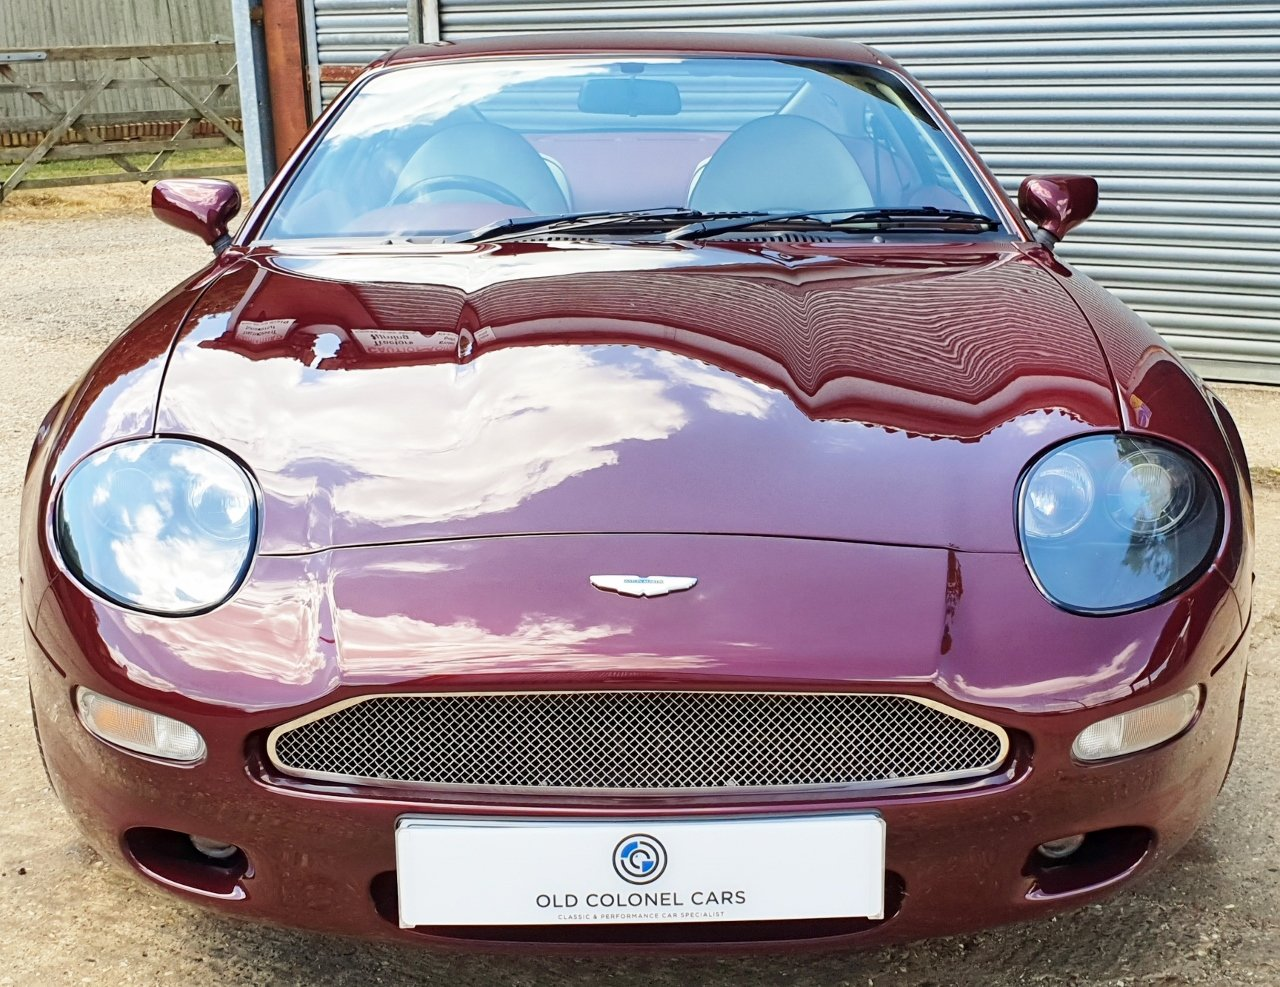 1998 ONLY 25,000 Miles - Pristine DB7 Auto - 3.2 Supercharged SOLD (picture 6 of 10)